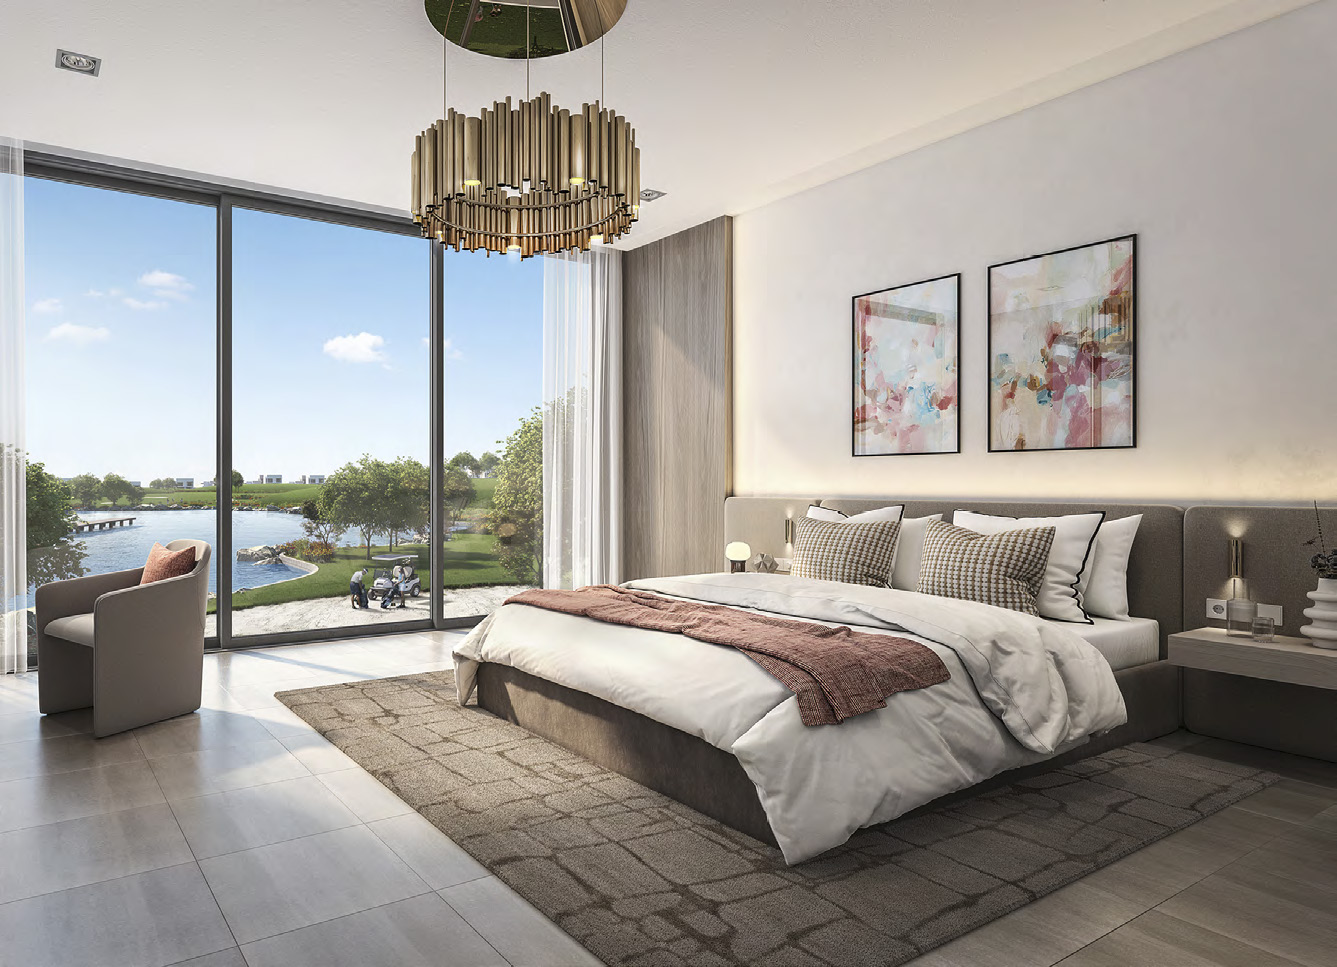 Yas Acres The Magnolias on Yas Island by Aldar. Premium townhouses and villas for sale in Abu Dhabi 3 1